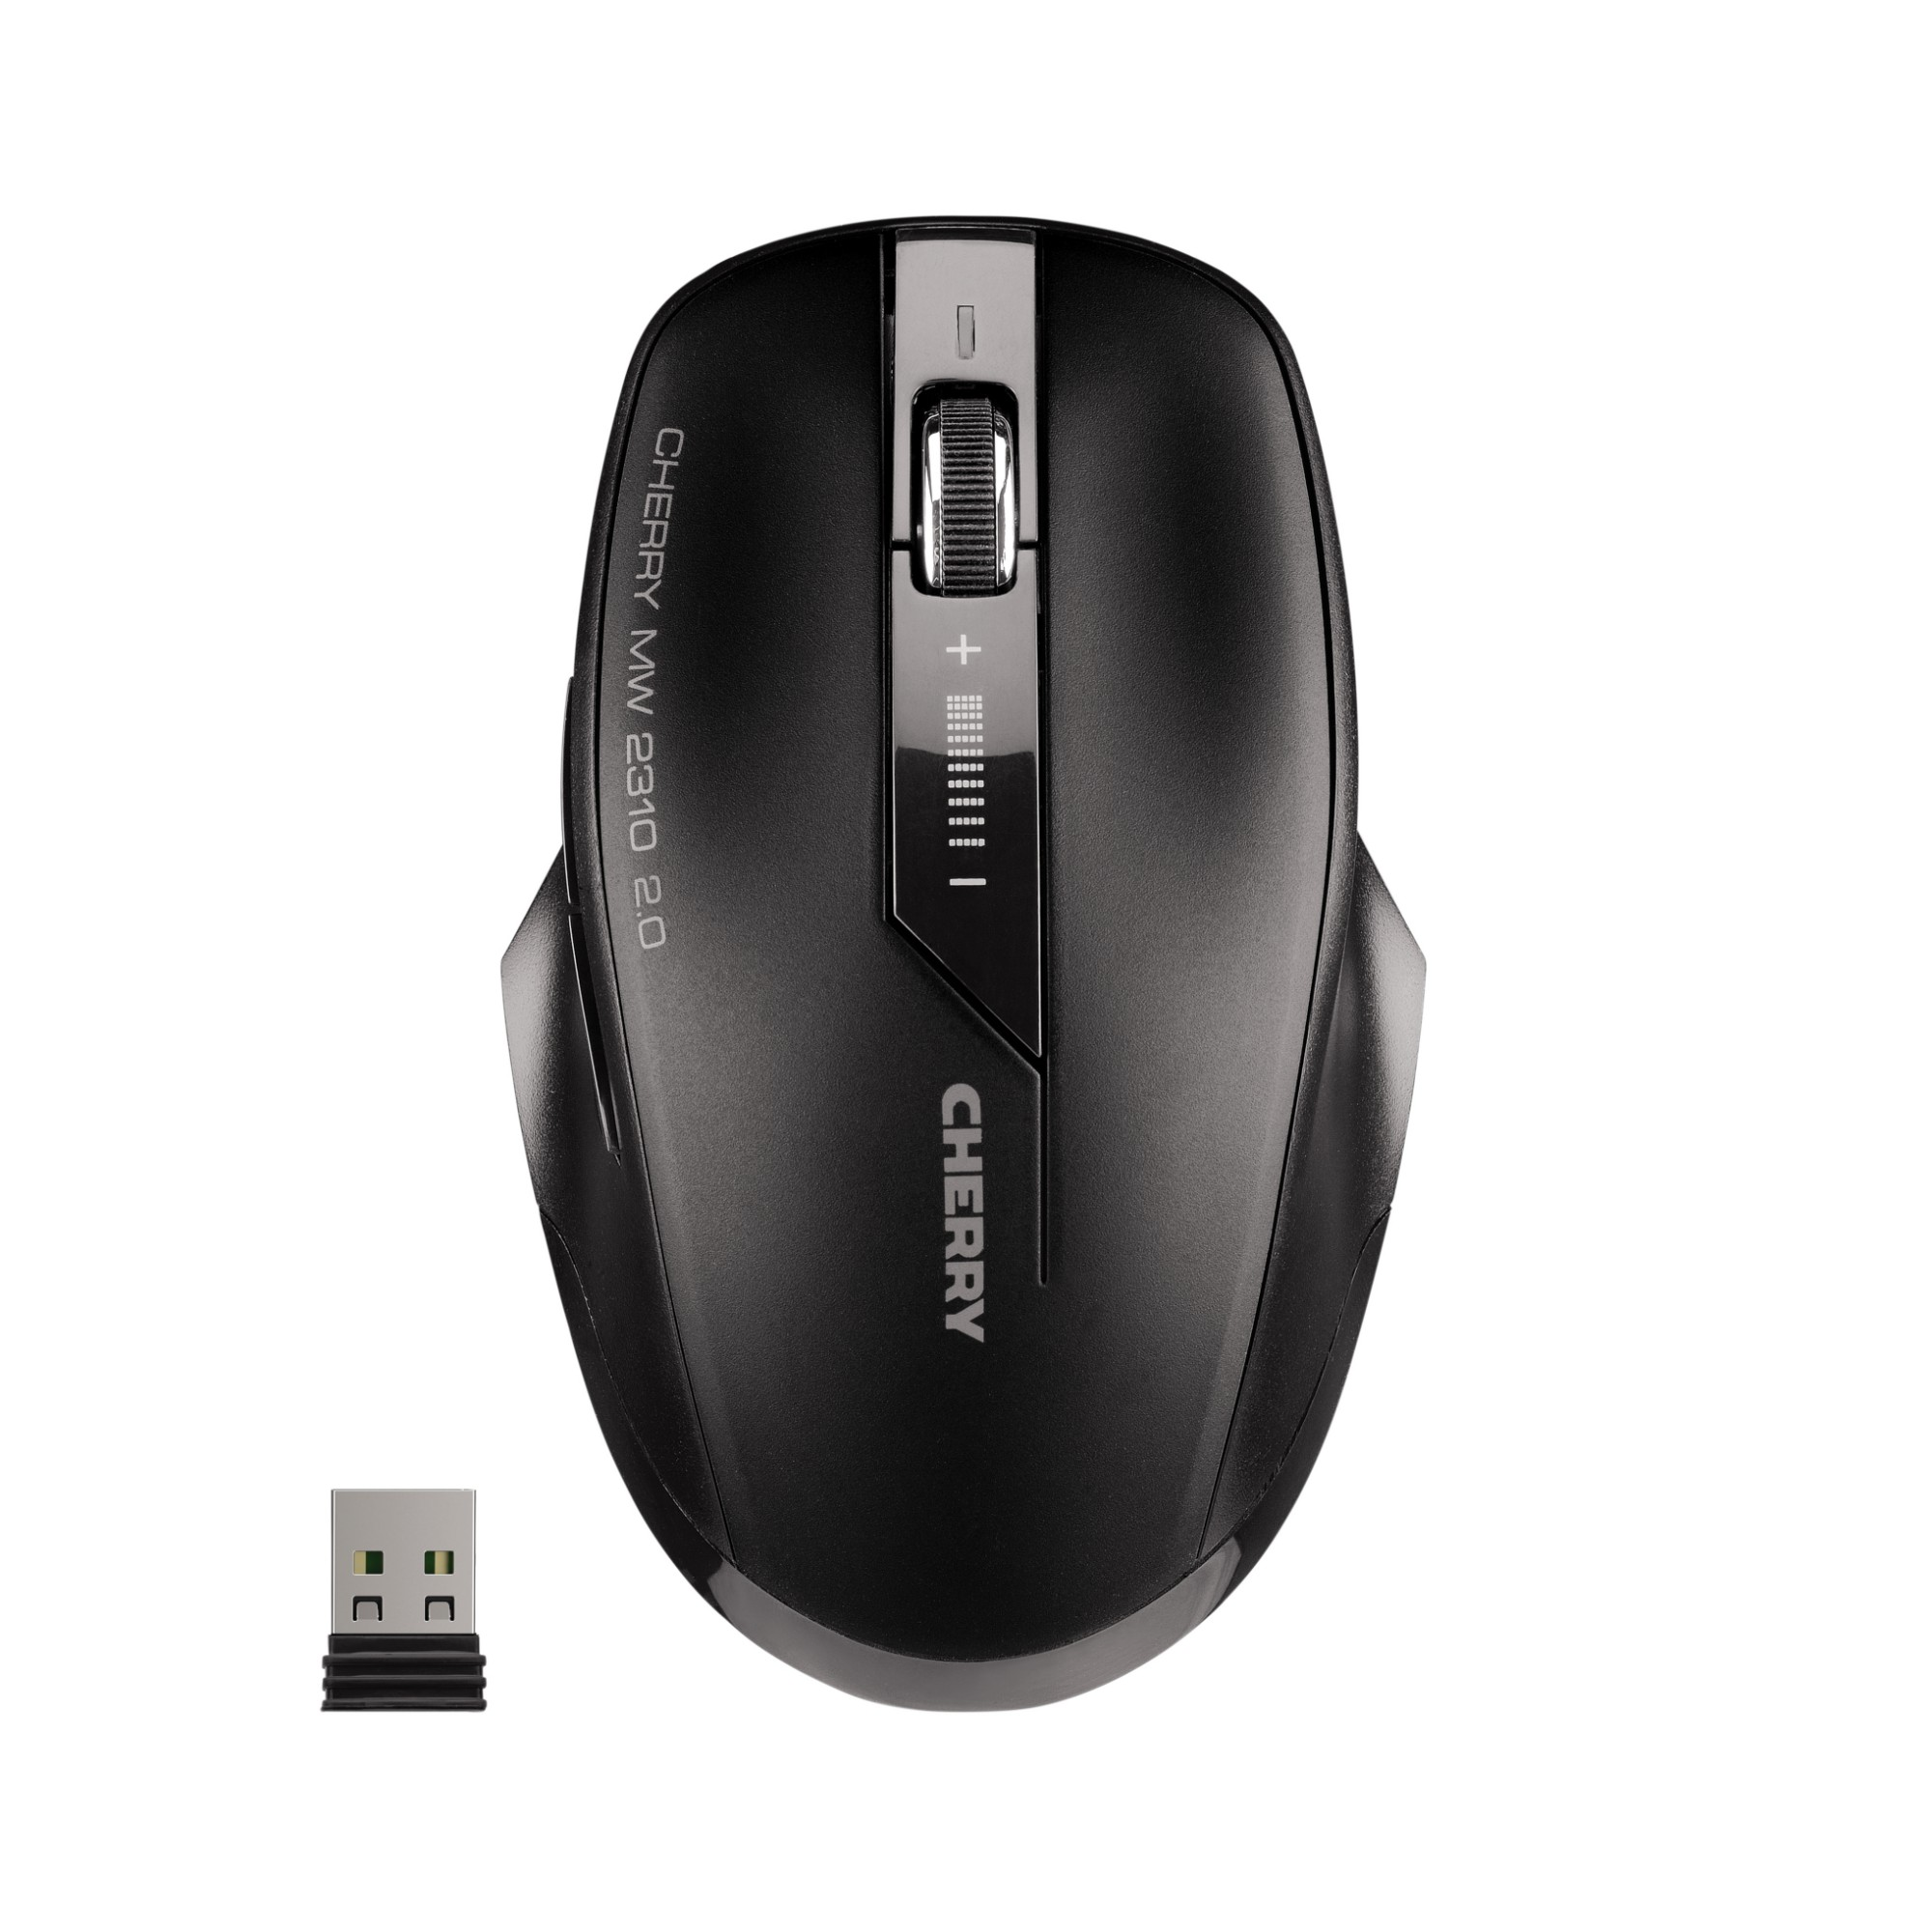 CHERRY MW 2310 2.0 mouse RF Wireless Optical 2400 DPI Ambidextrous